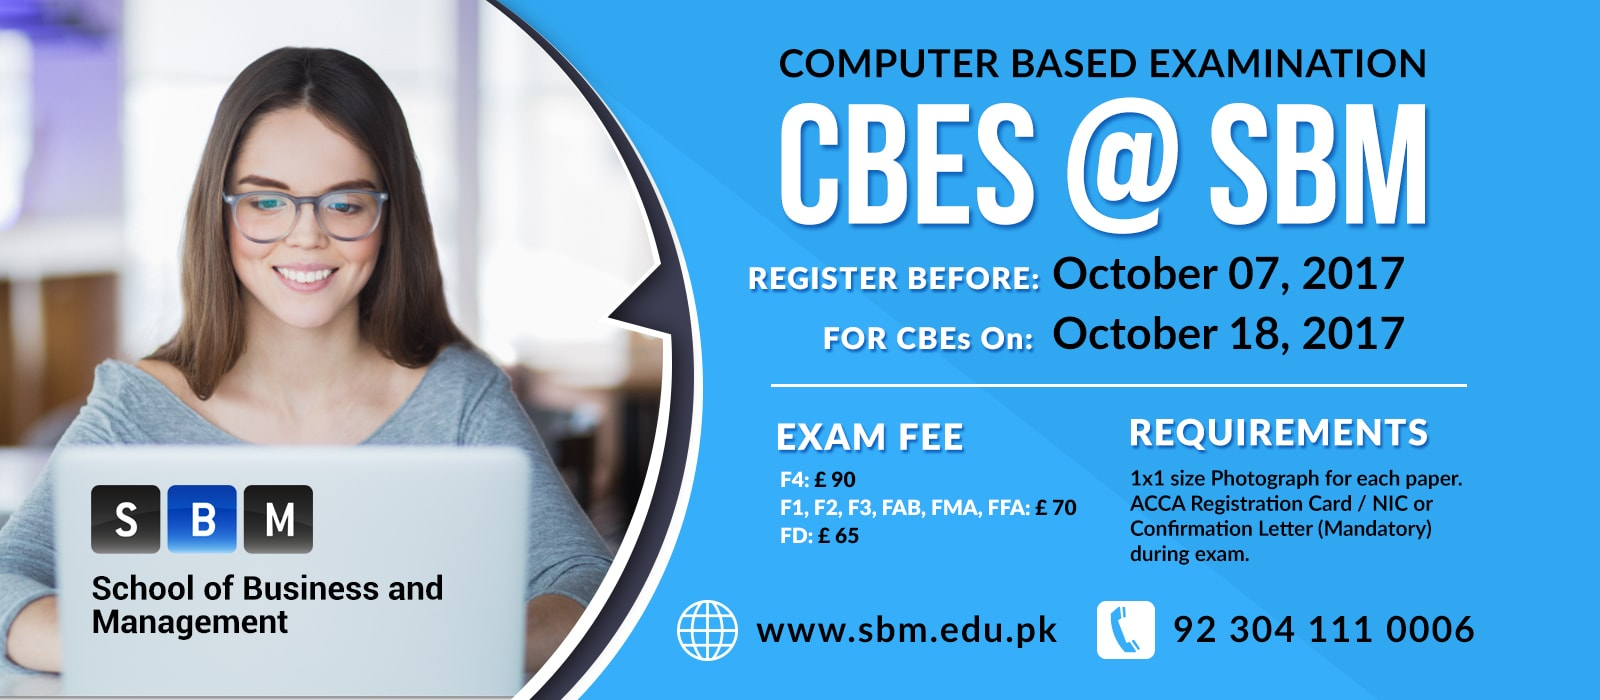 Register before 7th Oct for CBE exam on 18th Oct, 2017